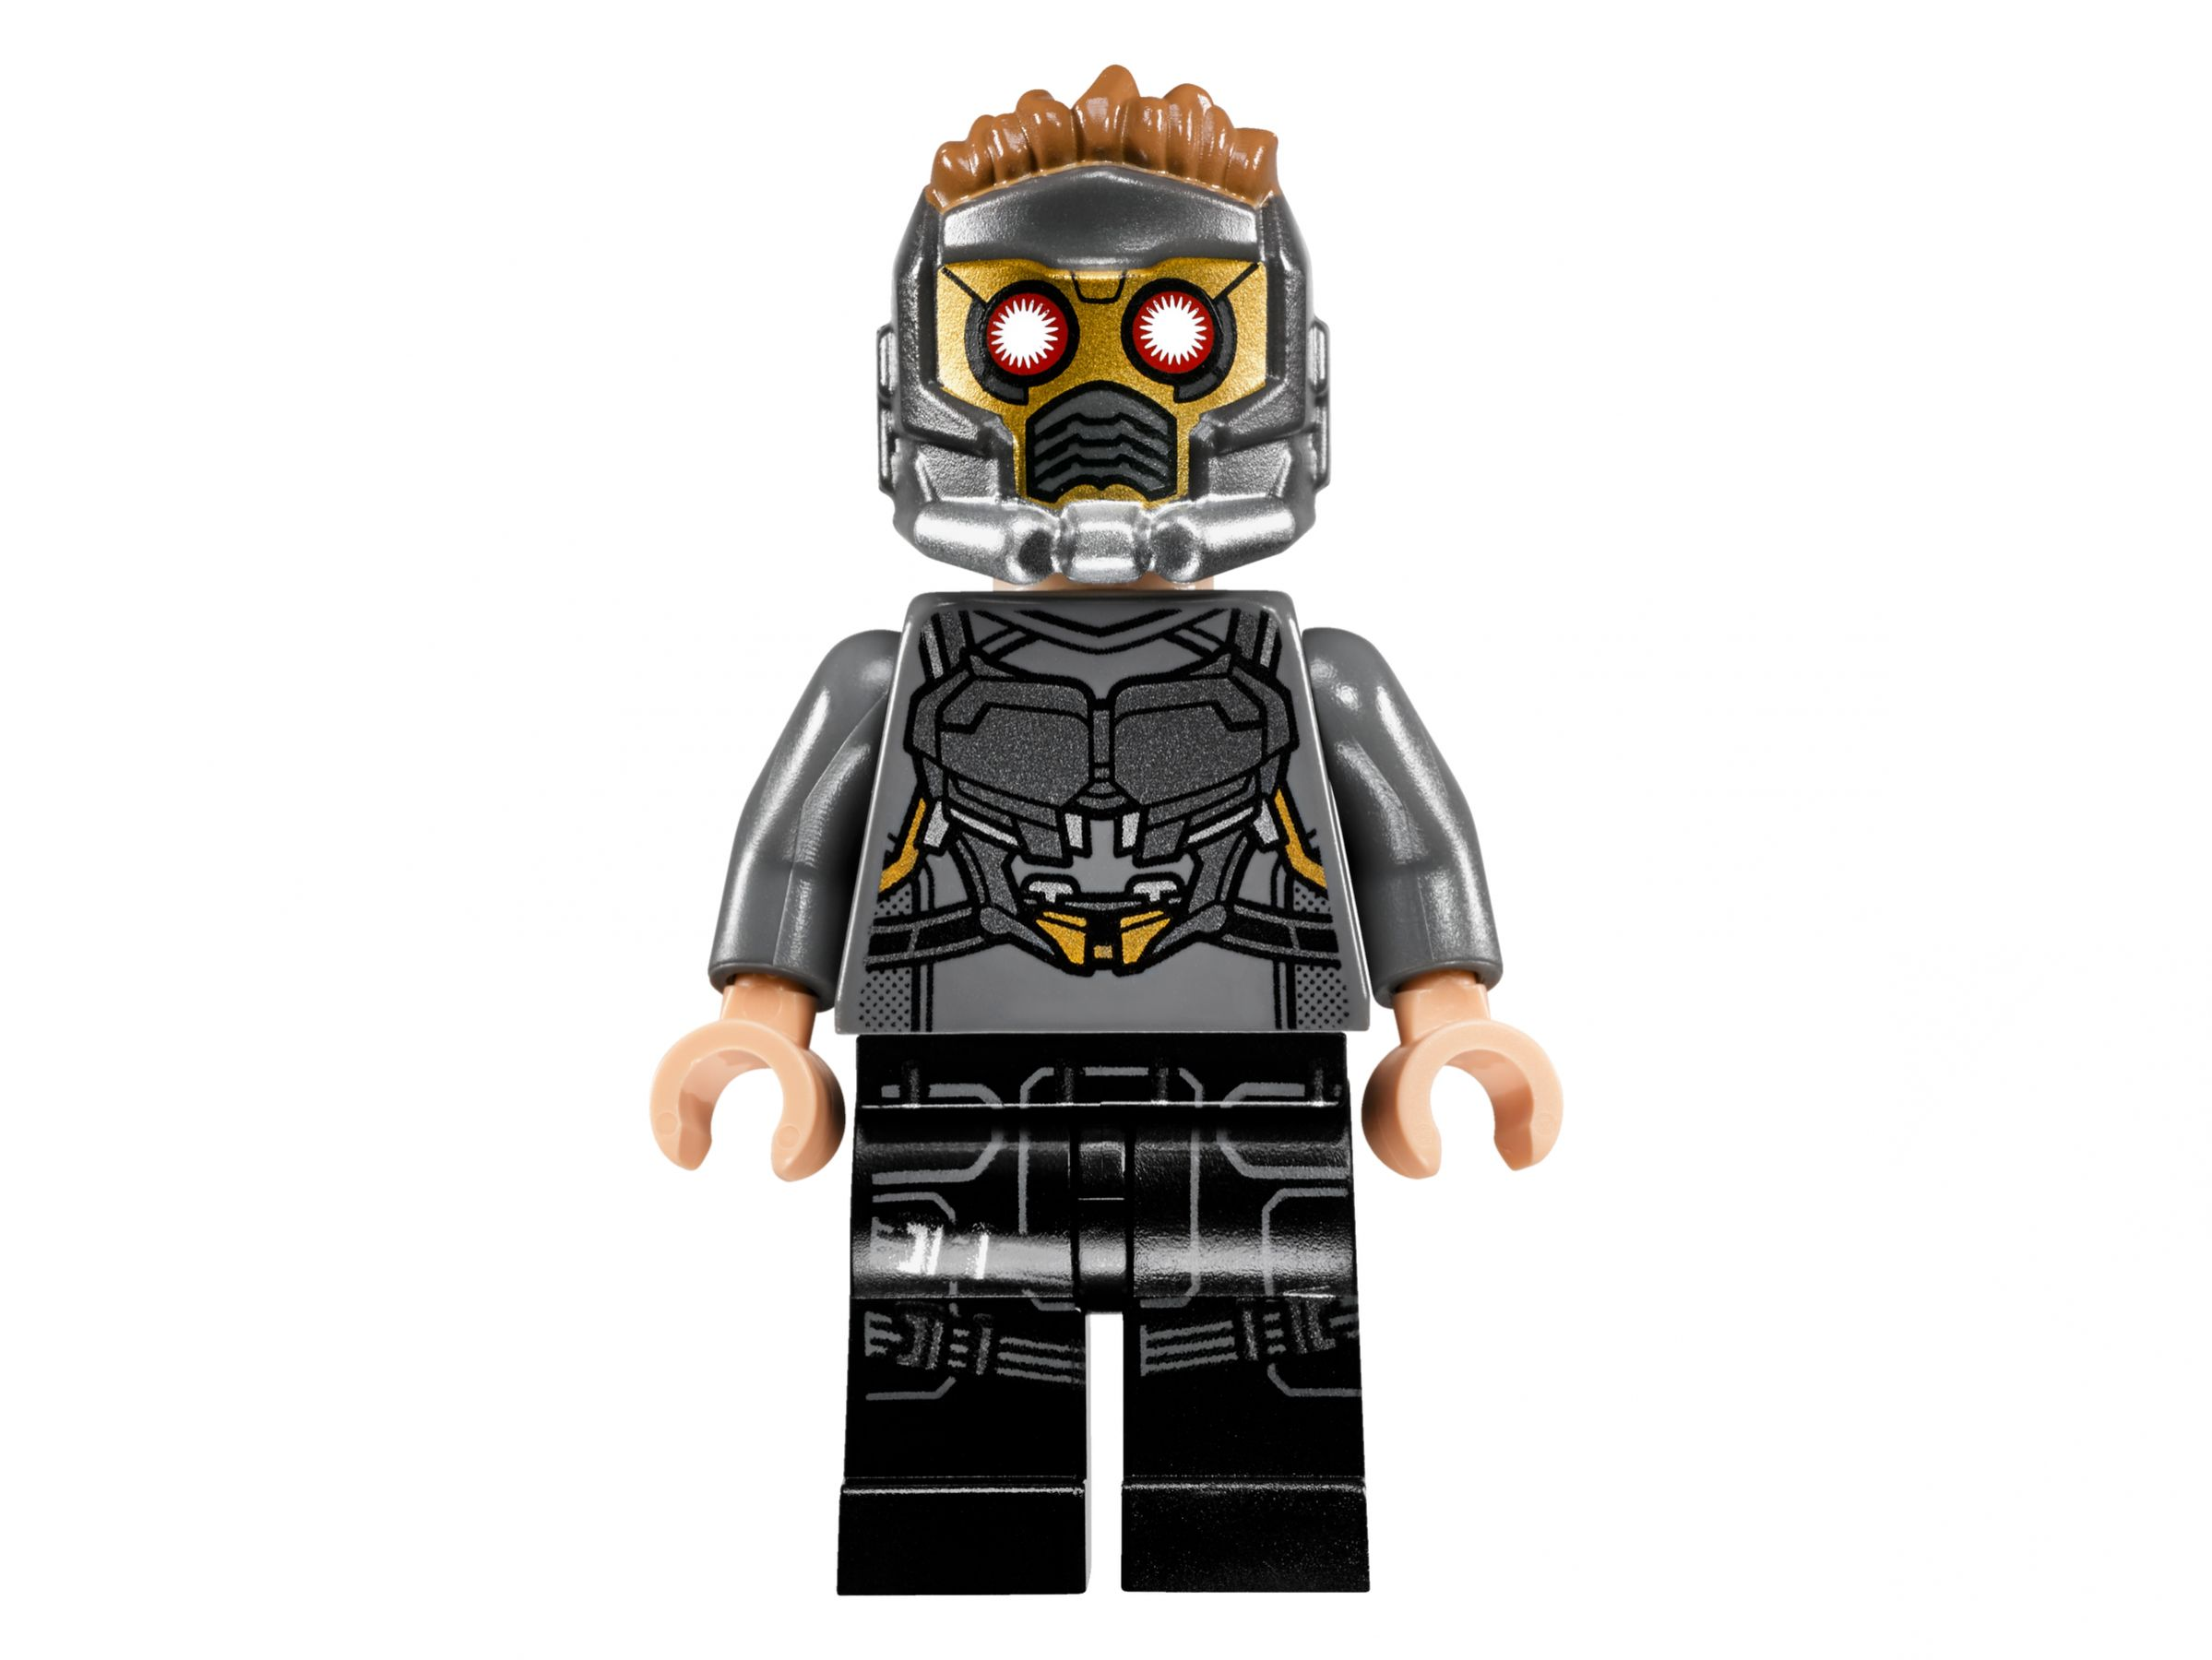 LEGO Super Heroes 76081 Guardians of the Galaxy - The Milano vs. The Abilisk LEGO_76081_alt10.jpg